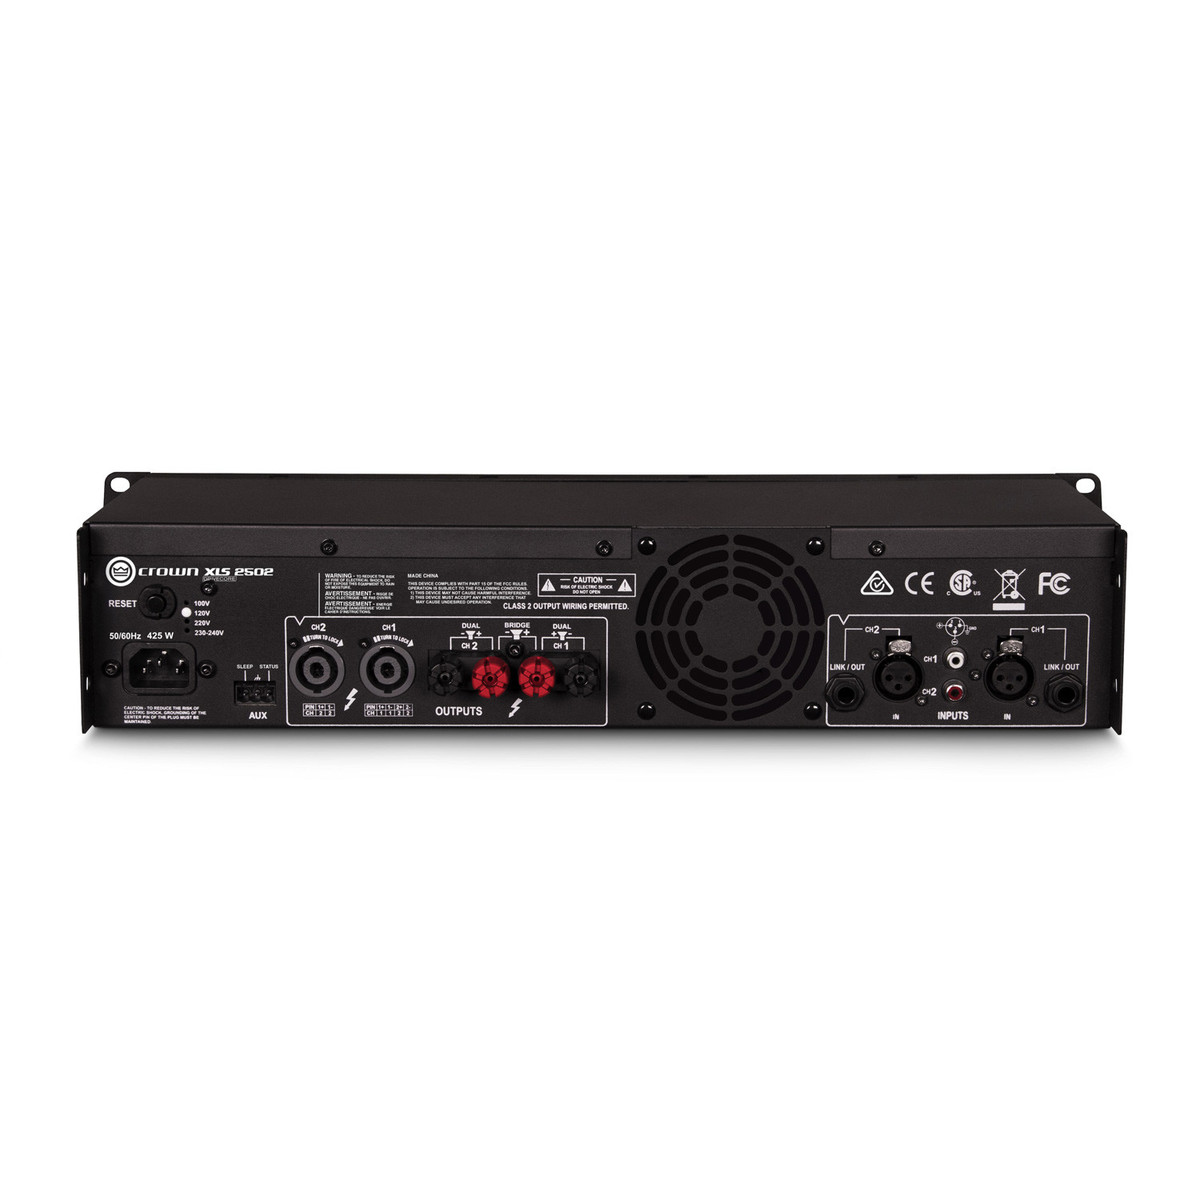 crown xls 2502 drivecore 2 775w stereo power amplifier at gear4music. Black Bedroom Furniture Sets. Home Design Ideas